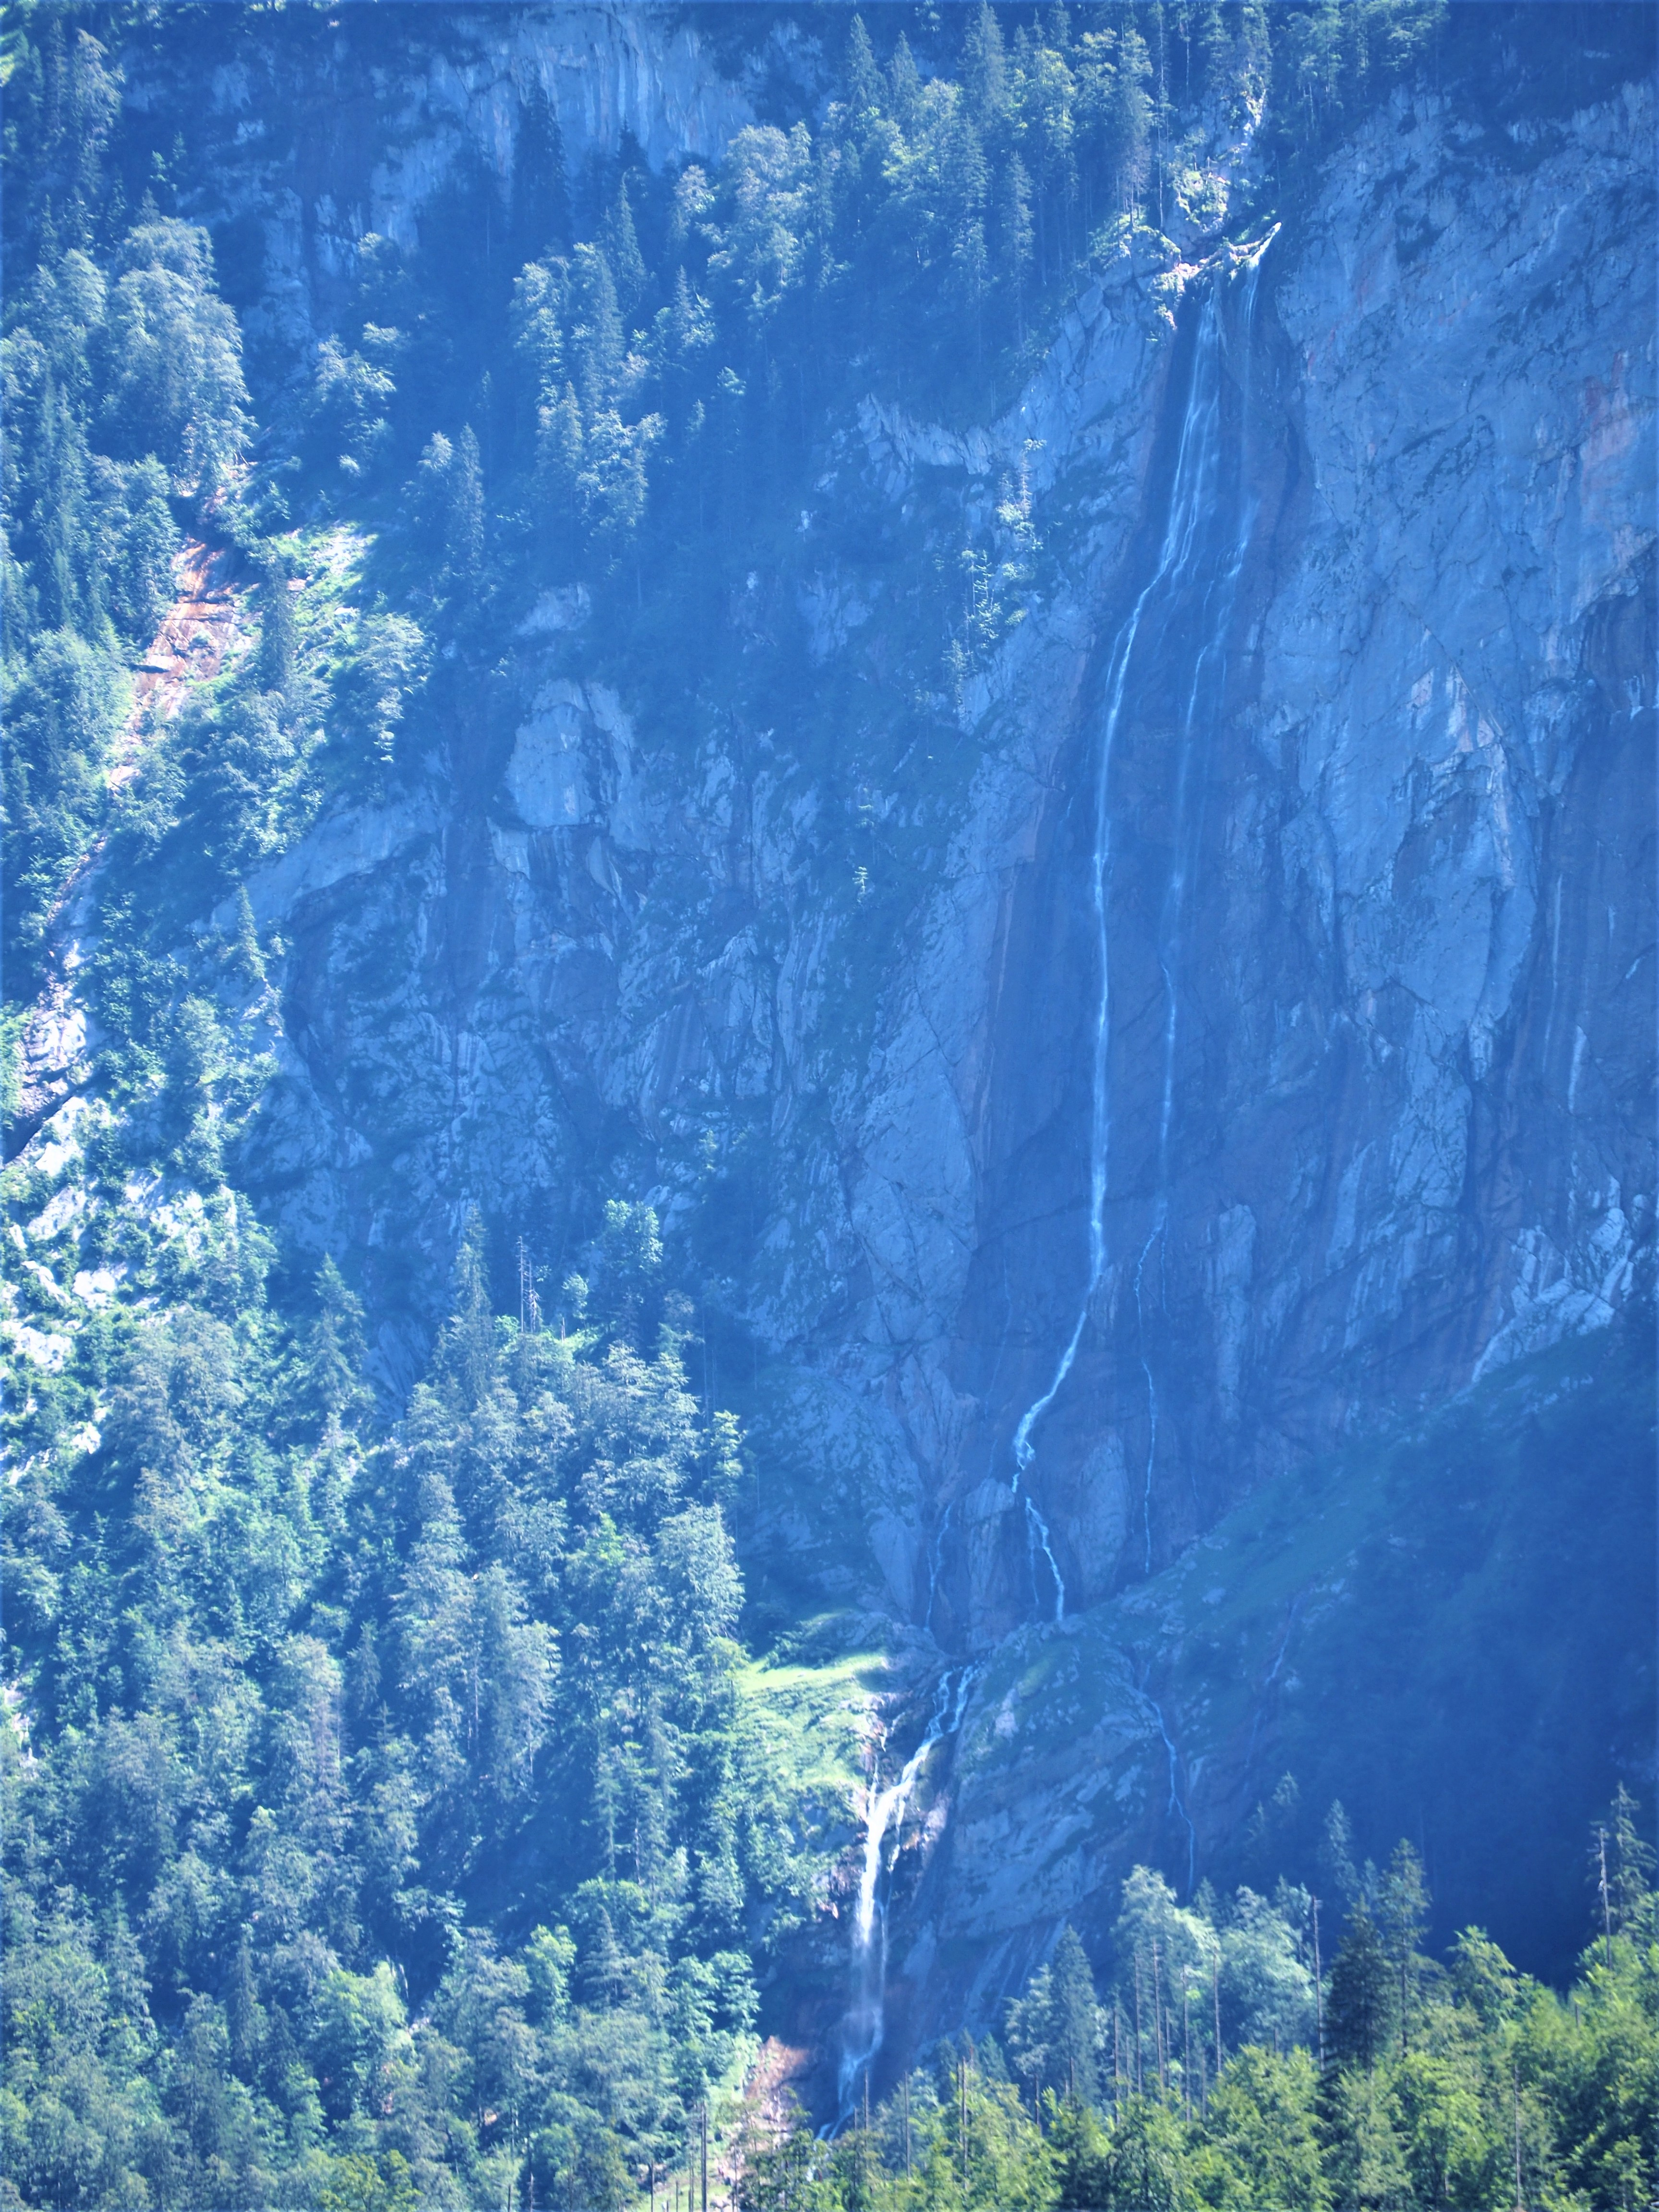 Konigssee-Obersee-allemagne-voyage-cascade-Chute-de-Rothbach zoom